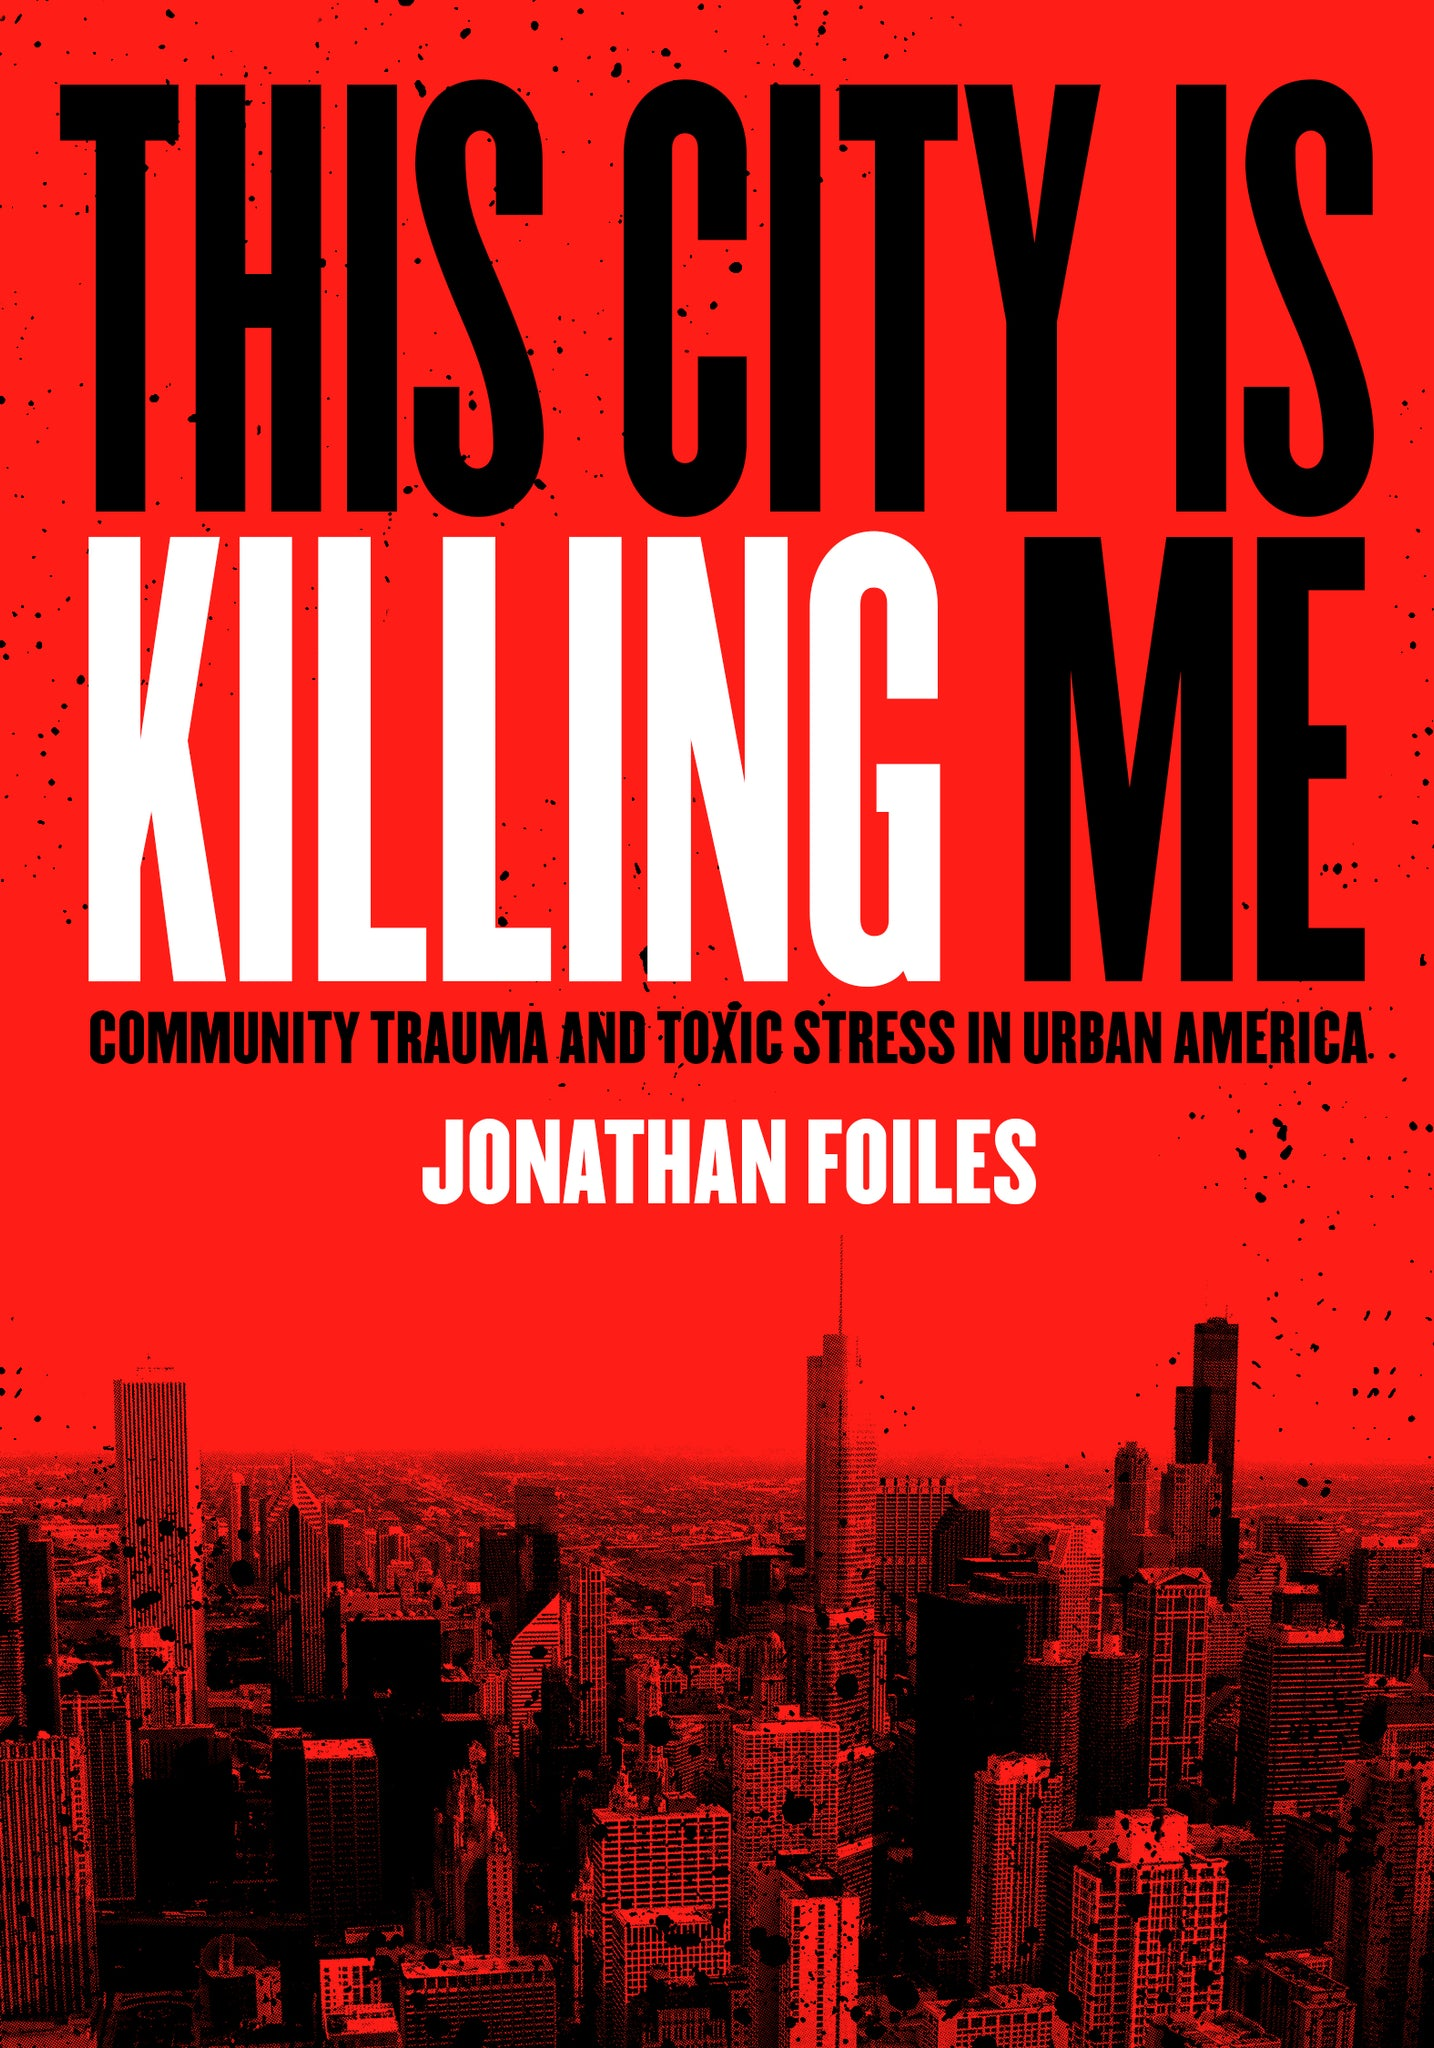 This City Is Killing Me: Community Trauma and Toxic Stress in Urban America (pre-order)